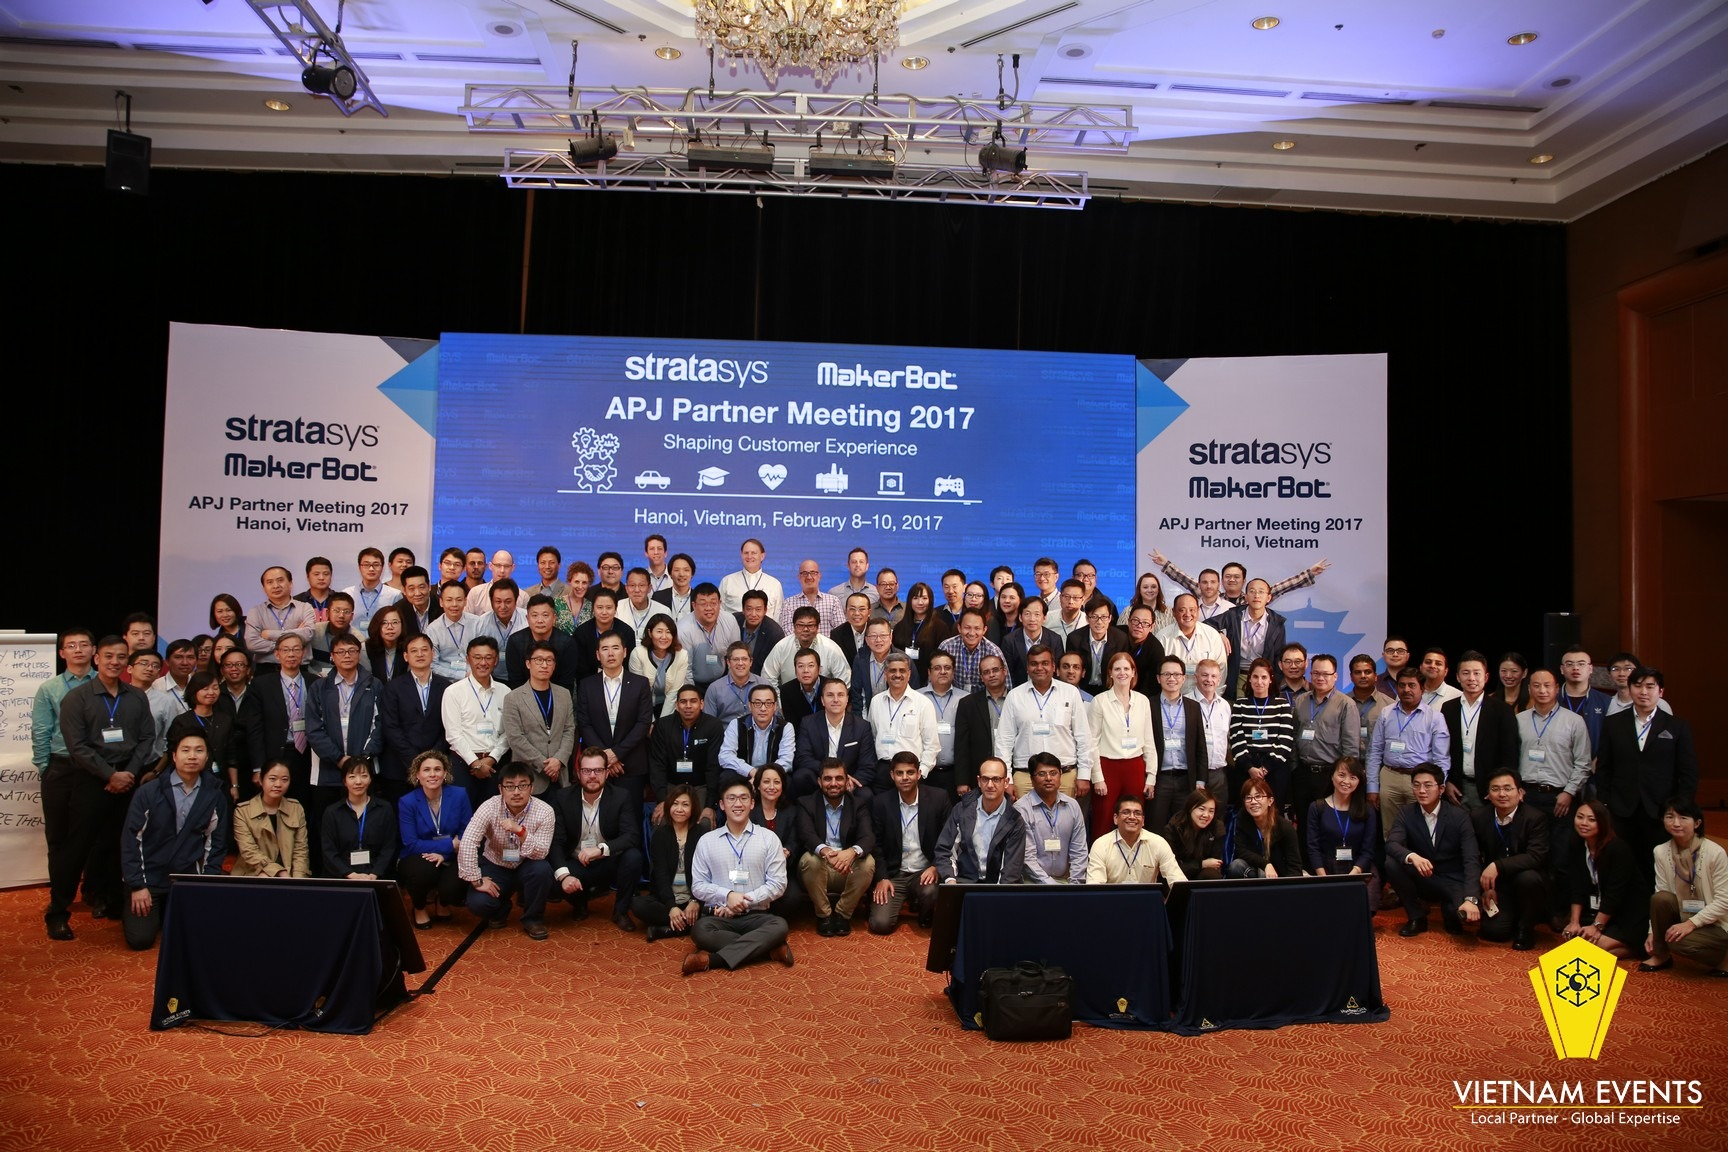 APJ Partner Meeting 2017 by Stratasys and Maker Bot